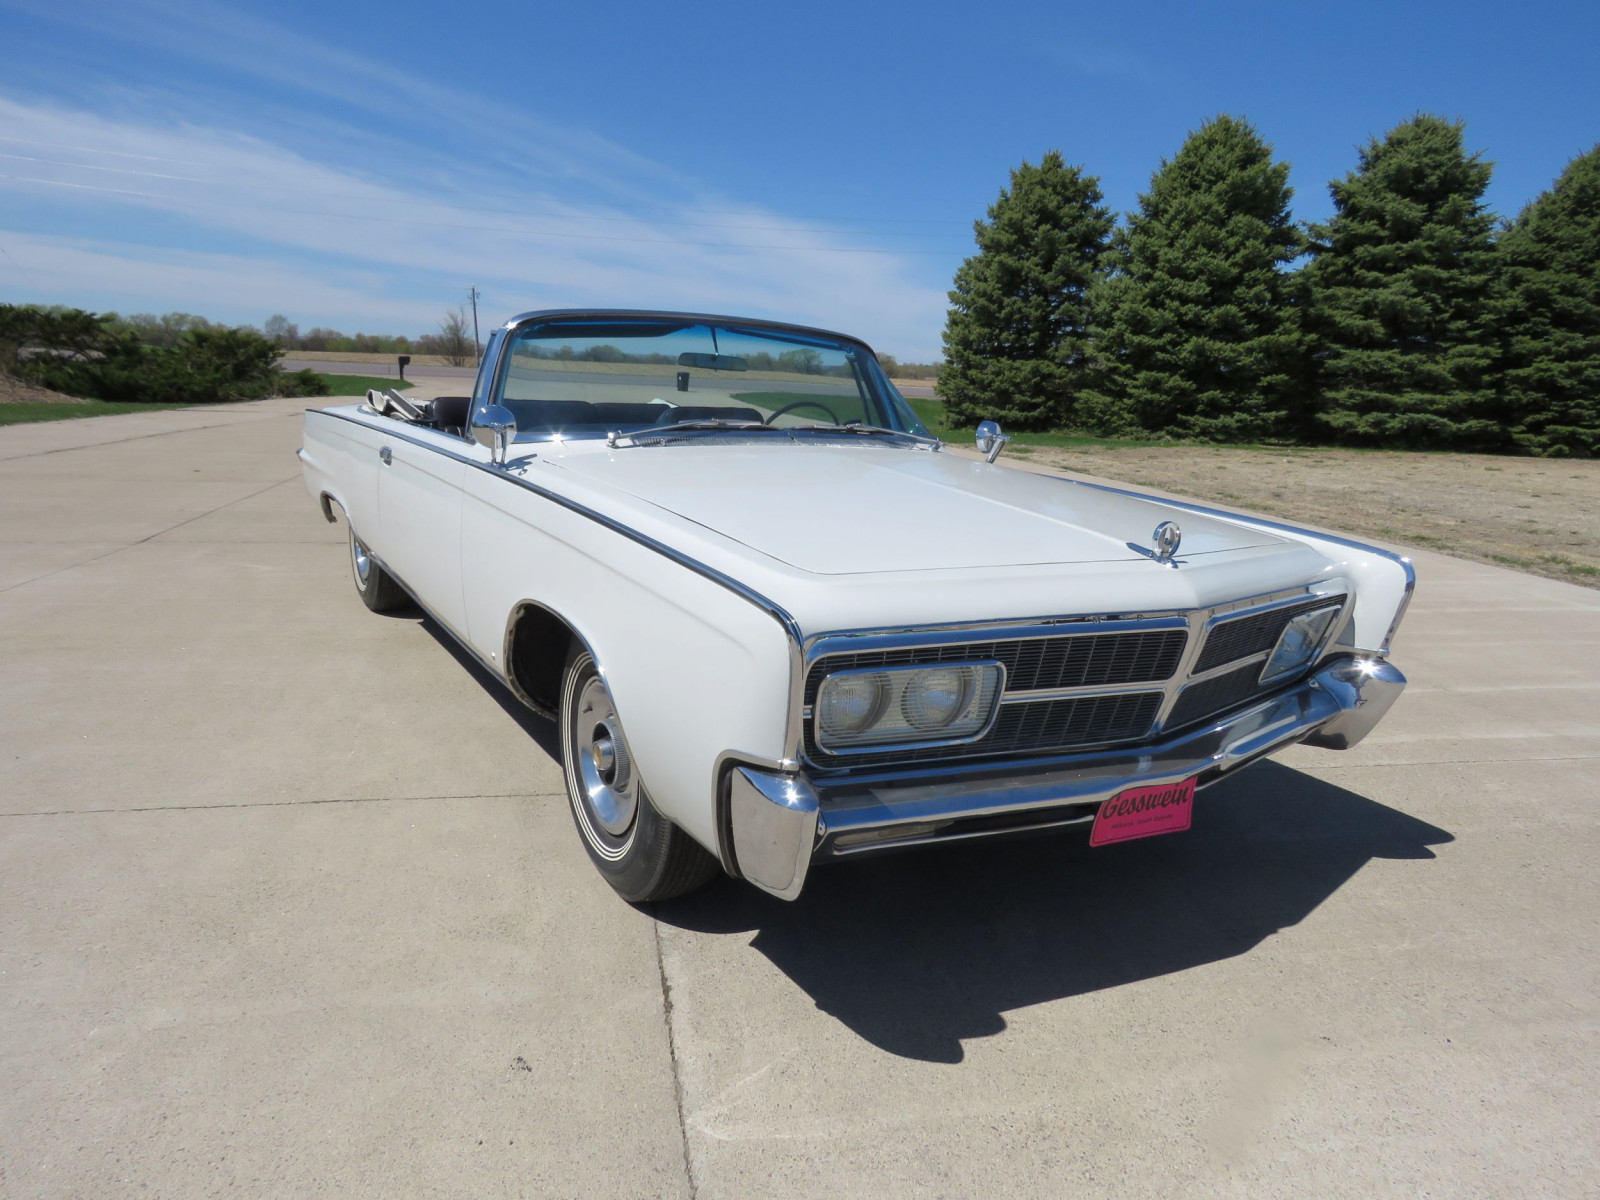 1965 Chrysler Imperial Crown Convertible - Image 1